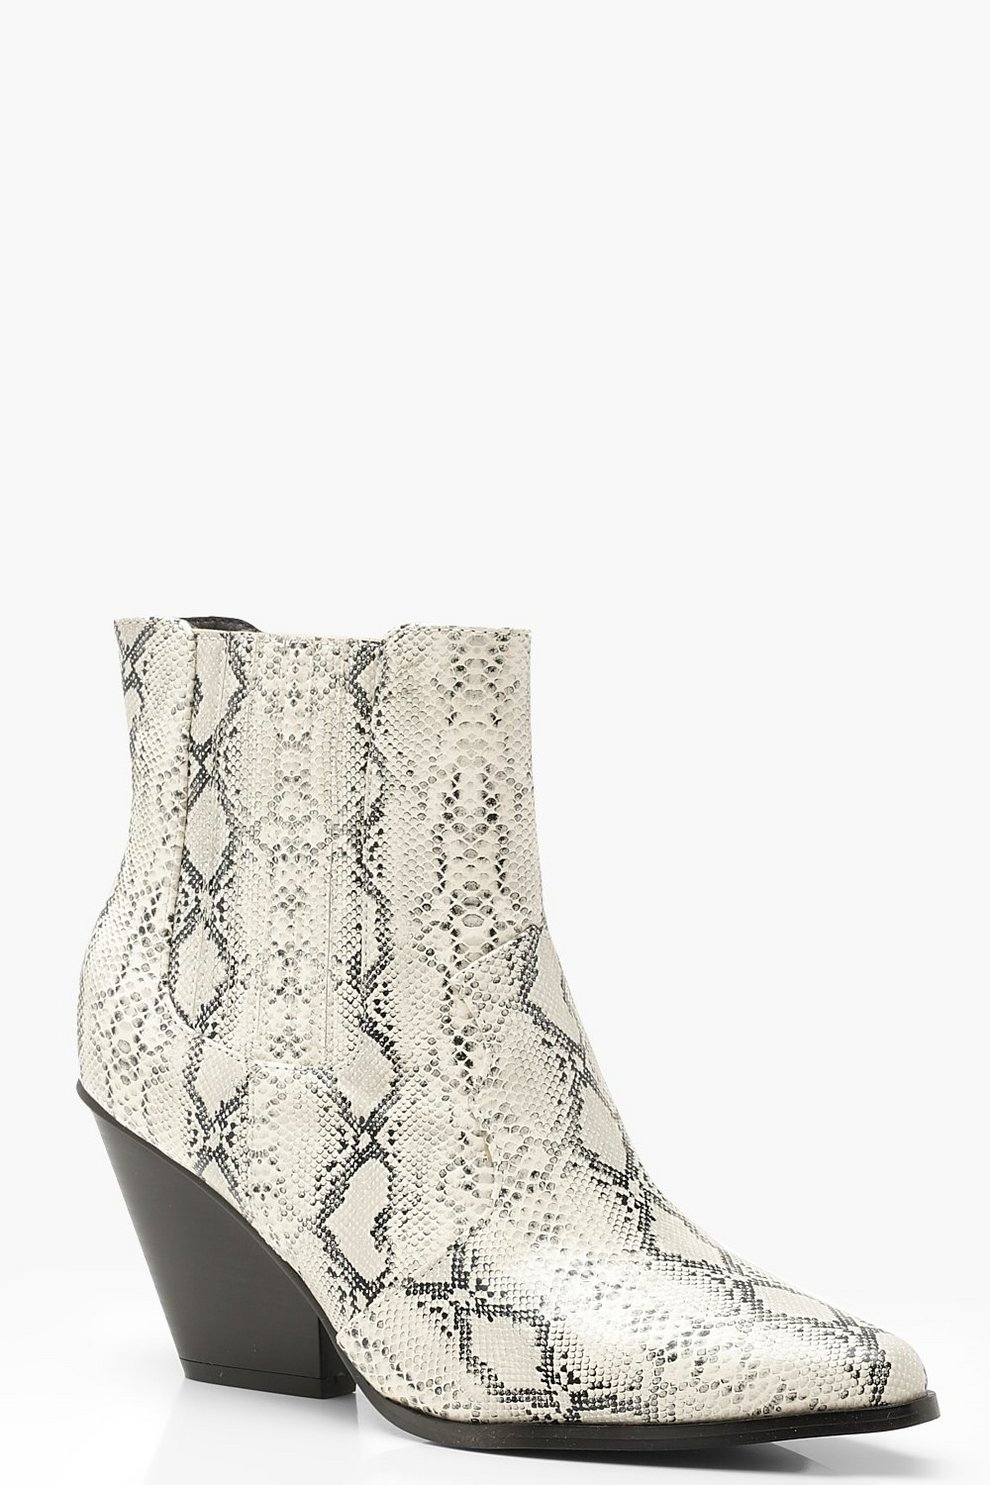 80e070331c0c Western Style Snake Print Ankle Boots   Boohoo